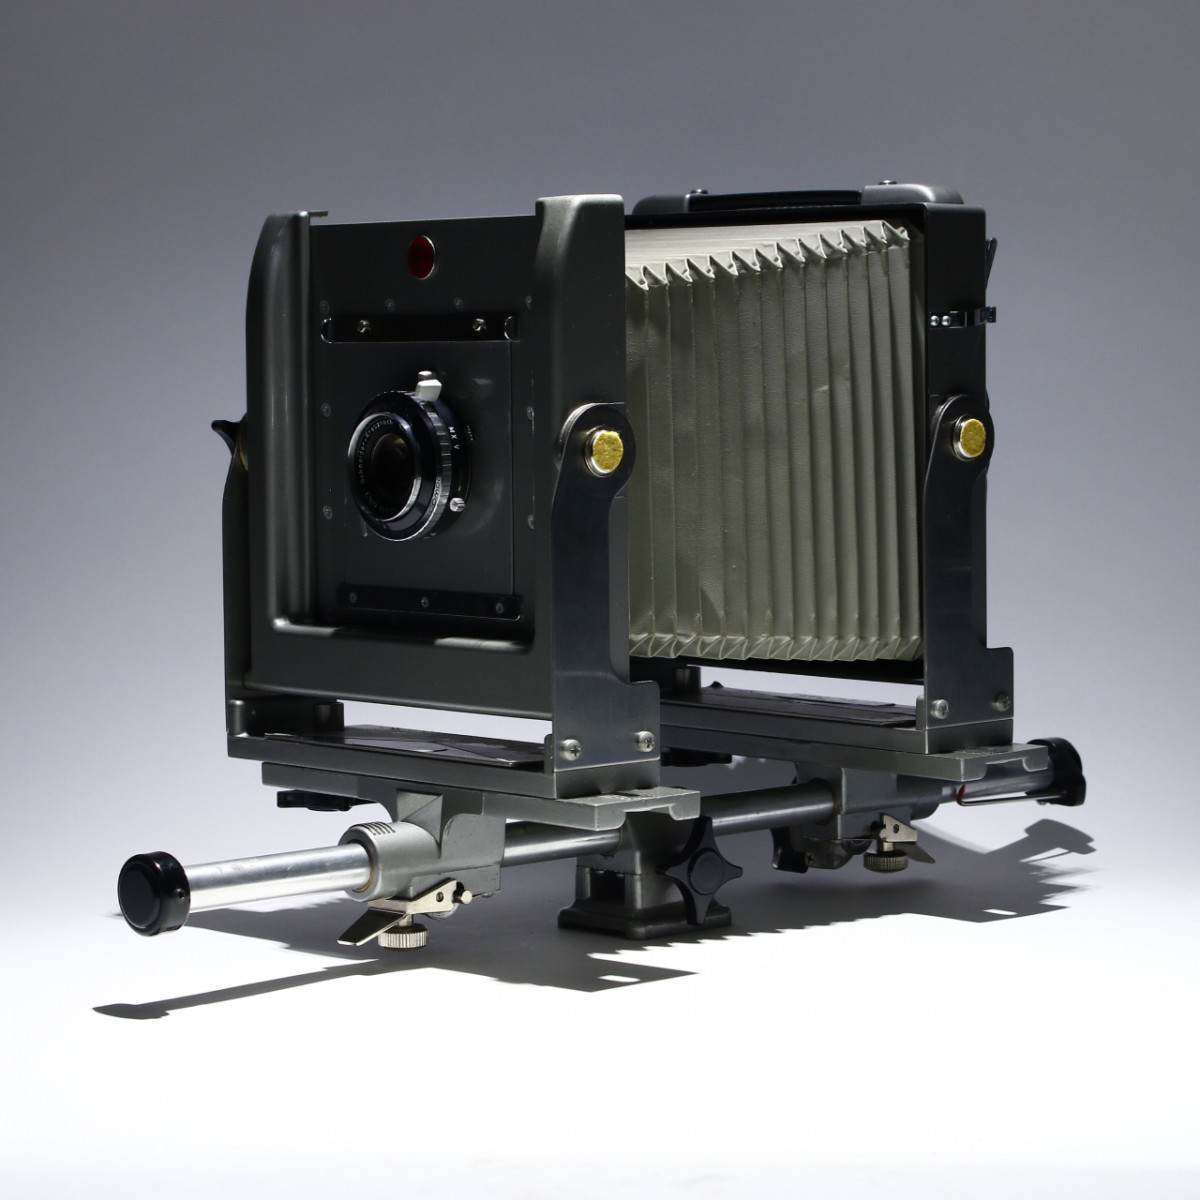 Opinion Vintage calumet 4x5 cameras tell more